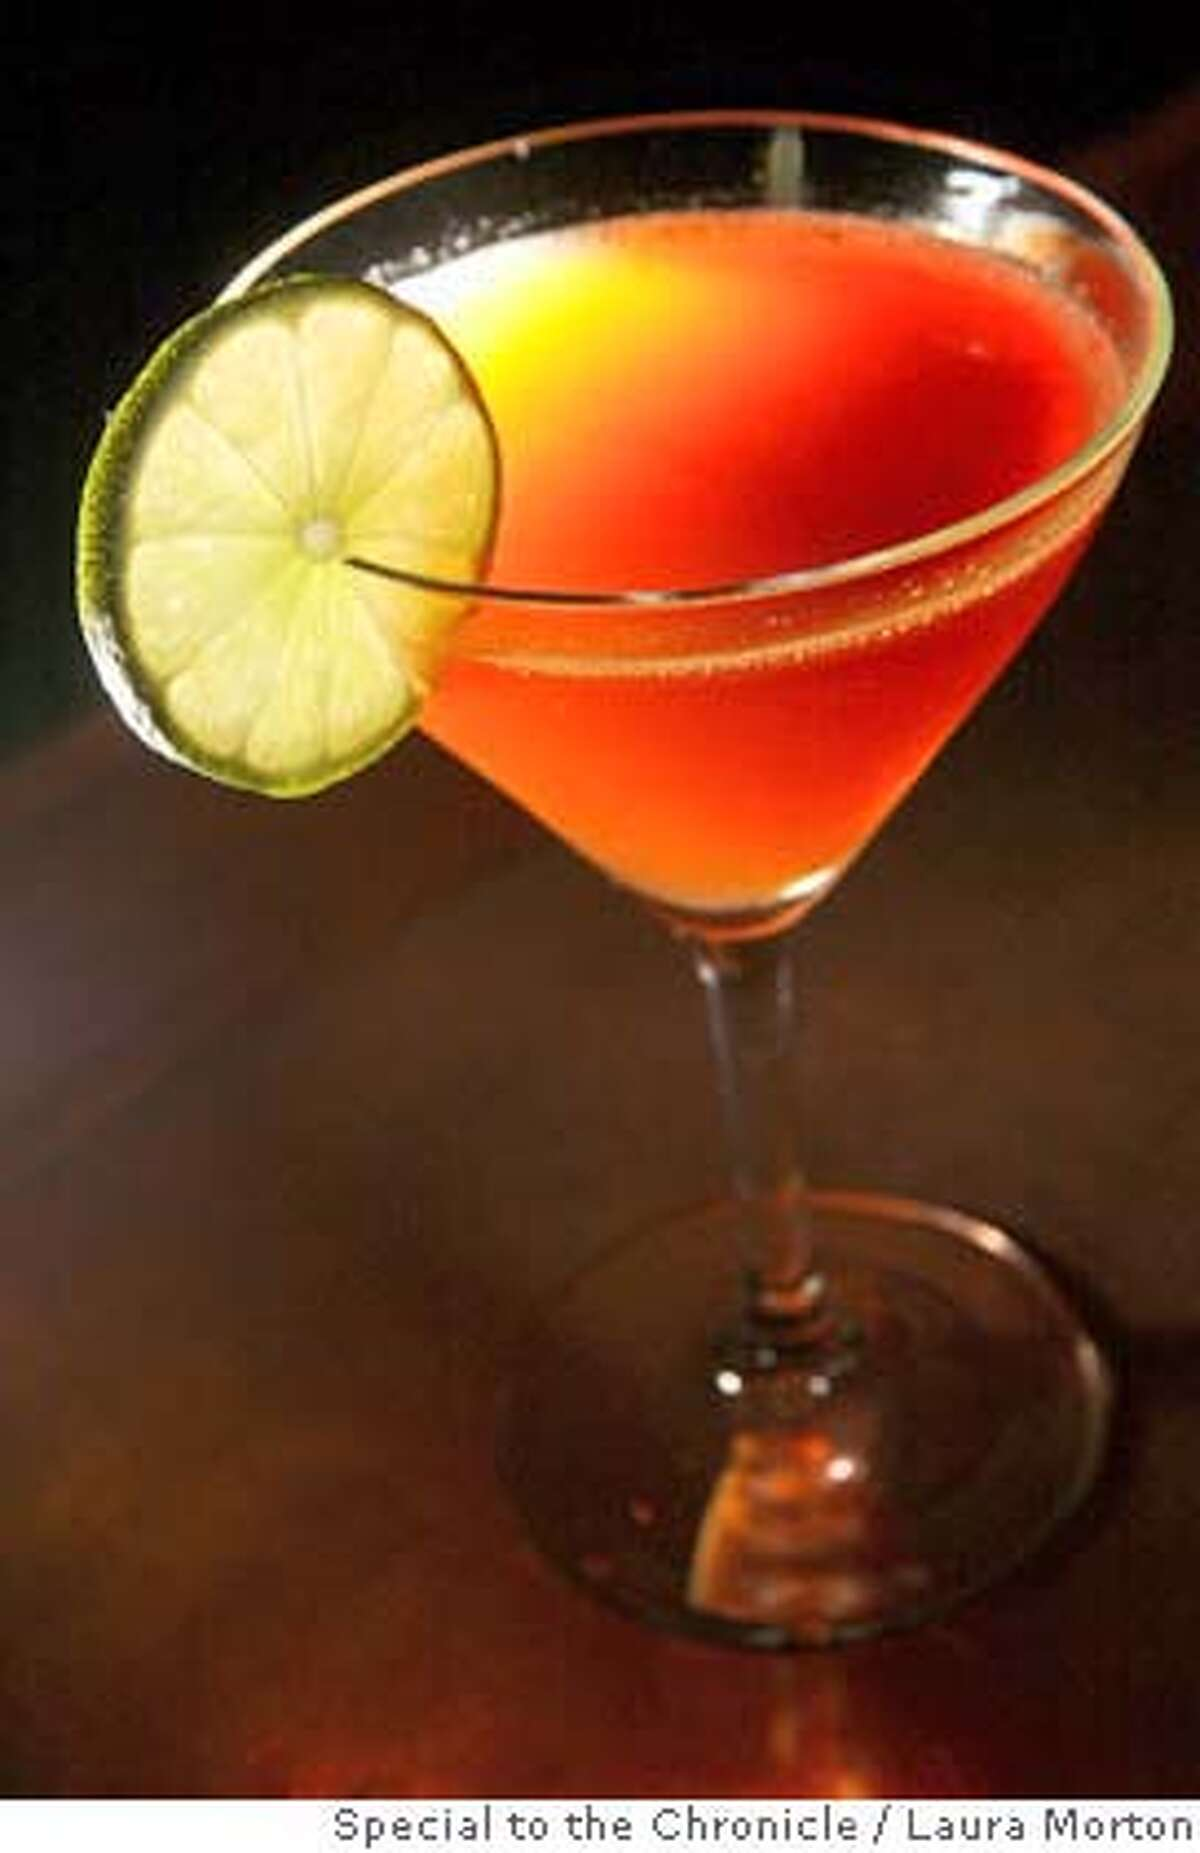 The Black Daiquiri at Brick, a cozy restaurant and bar in San Francisco. (Laura Morton/Special to the Chronicle)